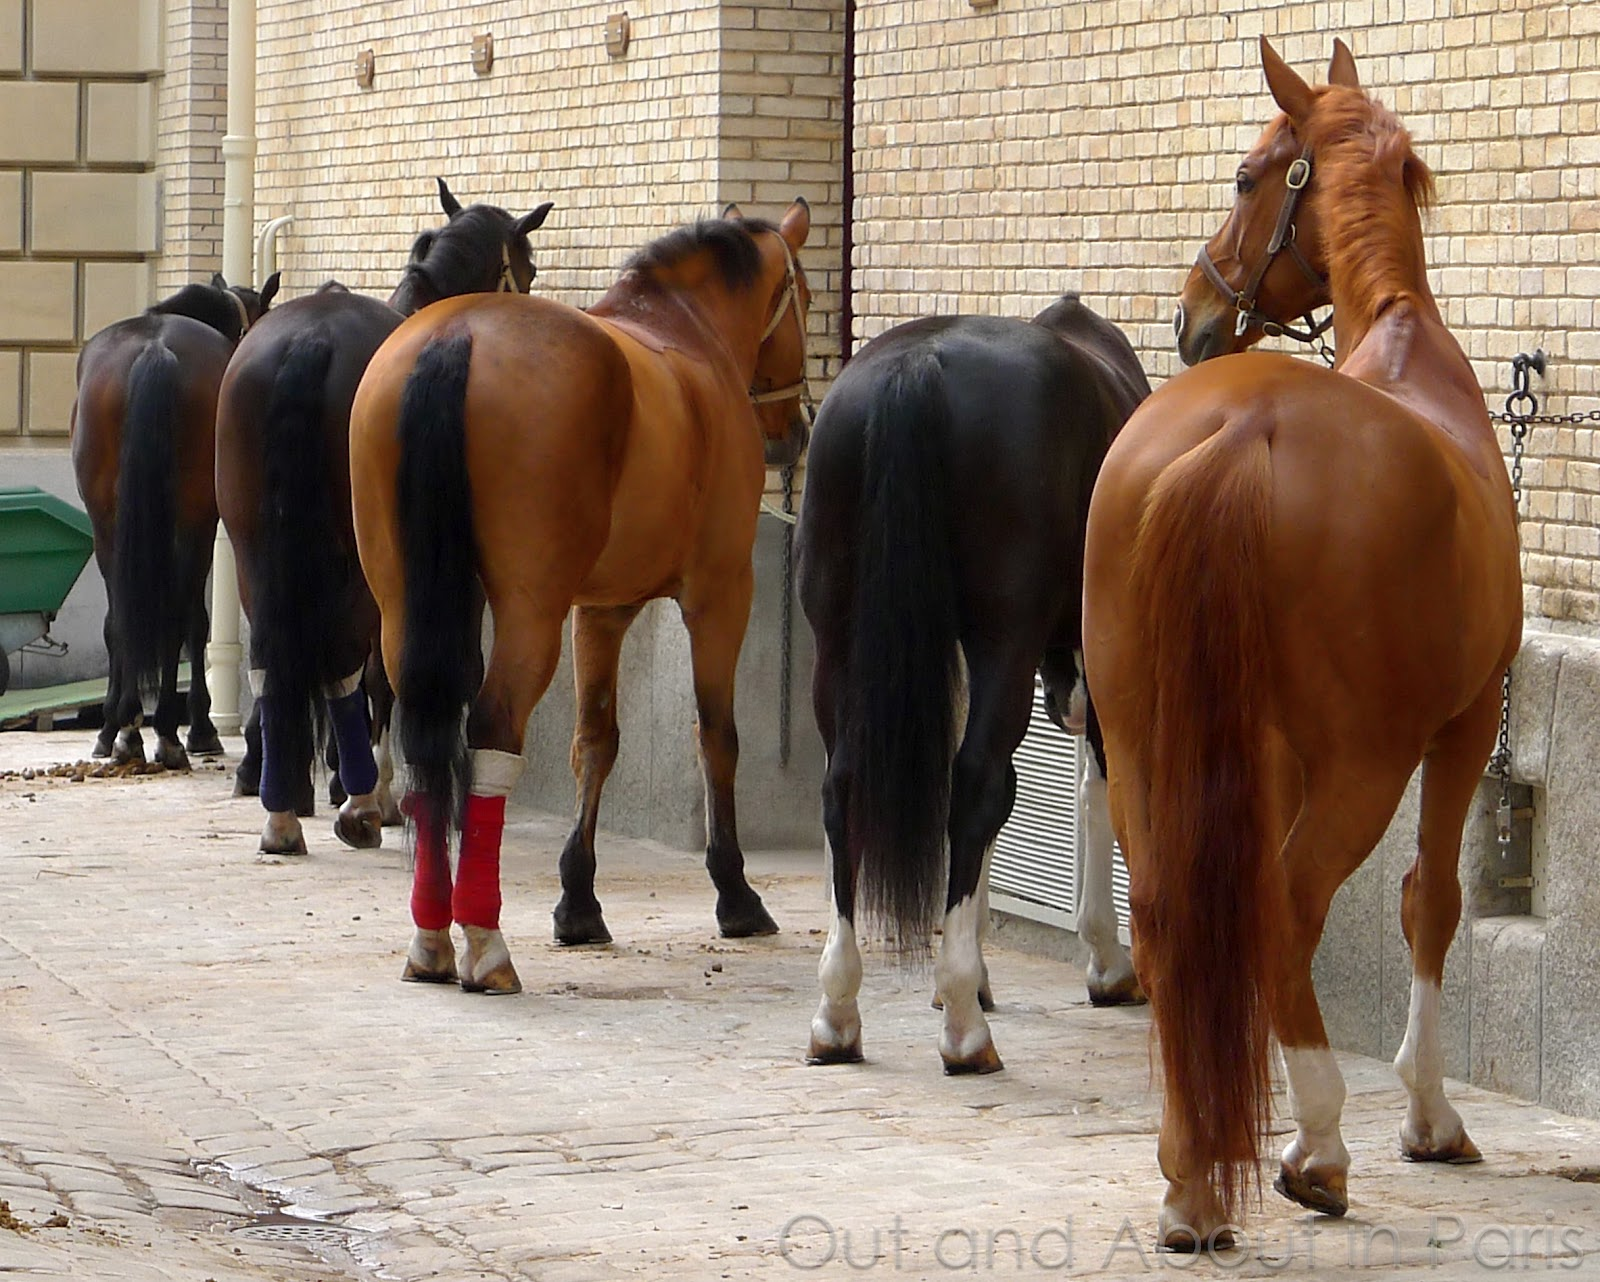 the horses of the french republican guard and the answer to the riddle